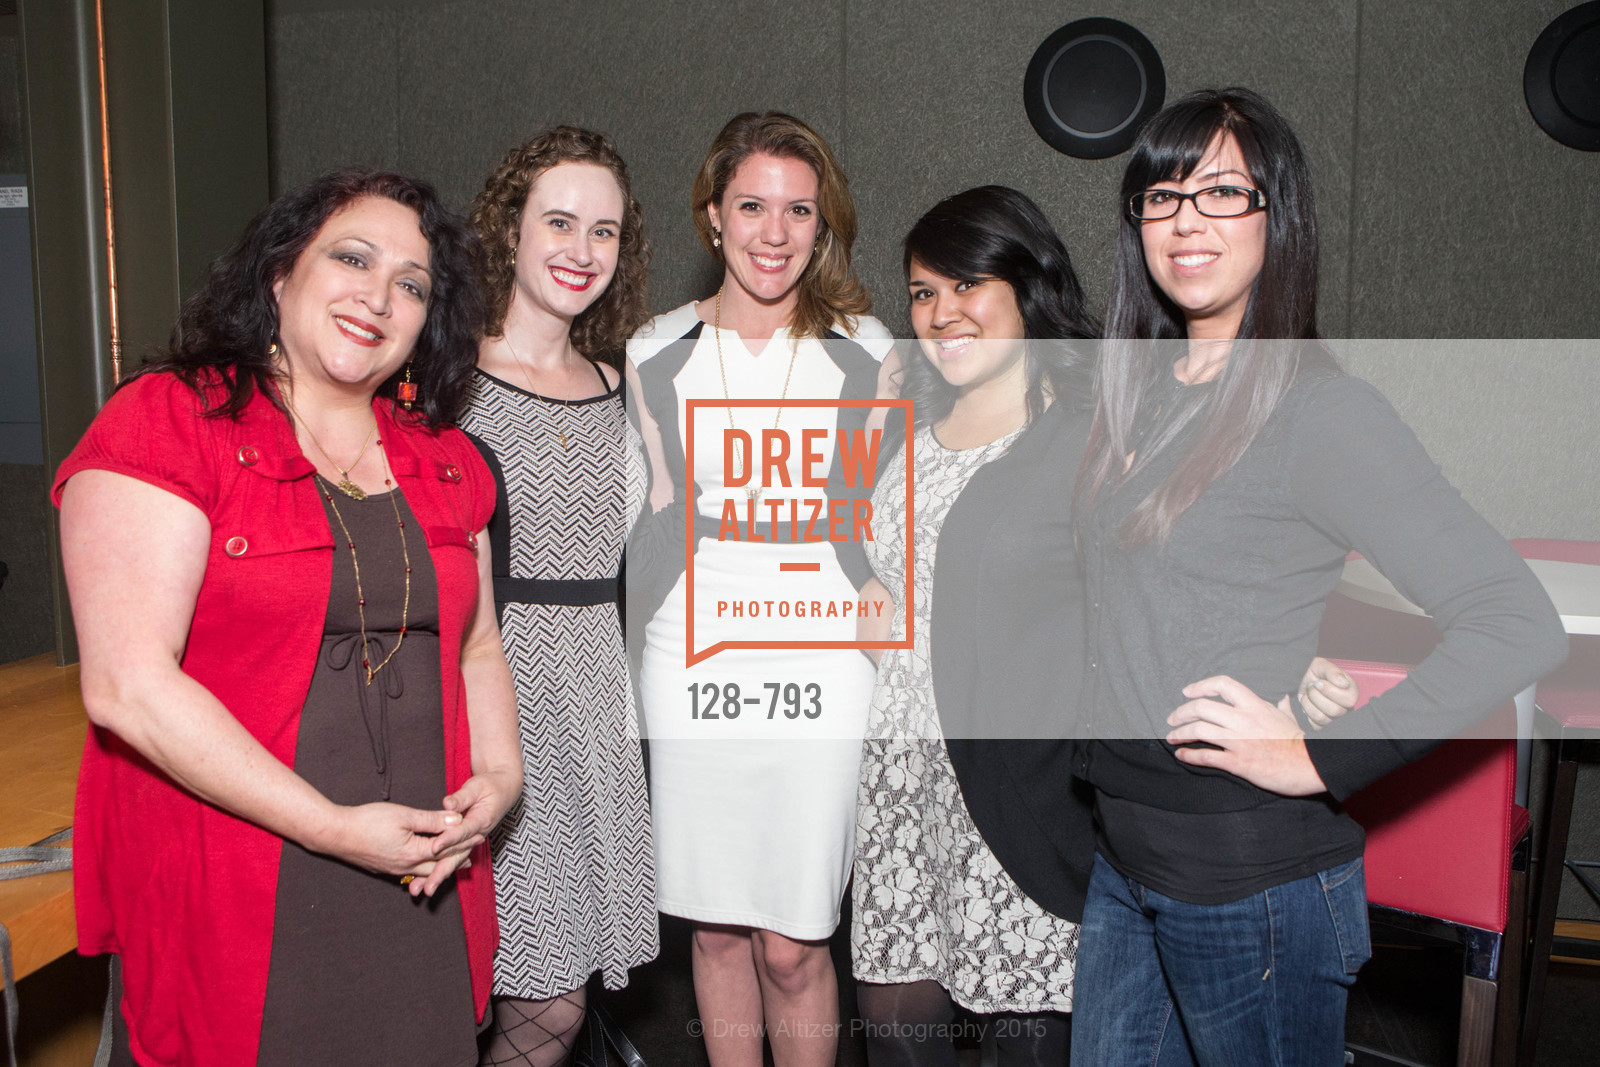 Miriam Mendoza, Moody, Susan Walker, Kari Lincks, Stacy Wall, Maile Trapani, SF BRAVO CLUB Sneak Peek at the EXPLORATORIUM, US, April 22nd, 2015,Drew Altizer, Drew Altizer Photography, full-service agency, private events, San Francisco photographer, photographer california